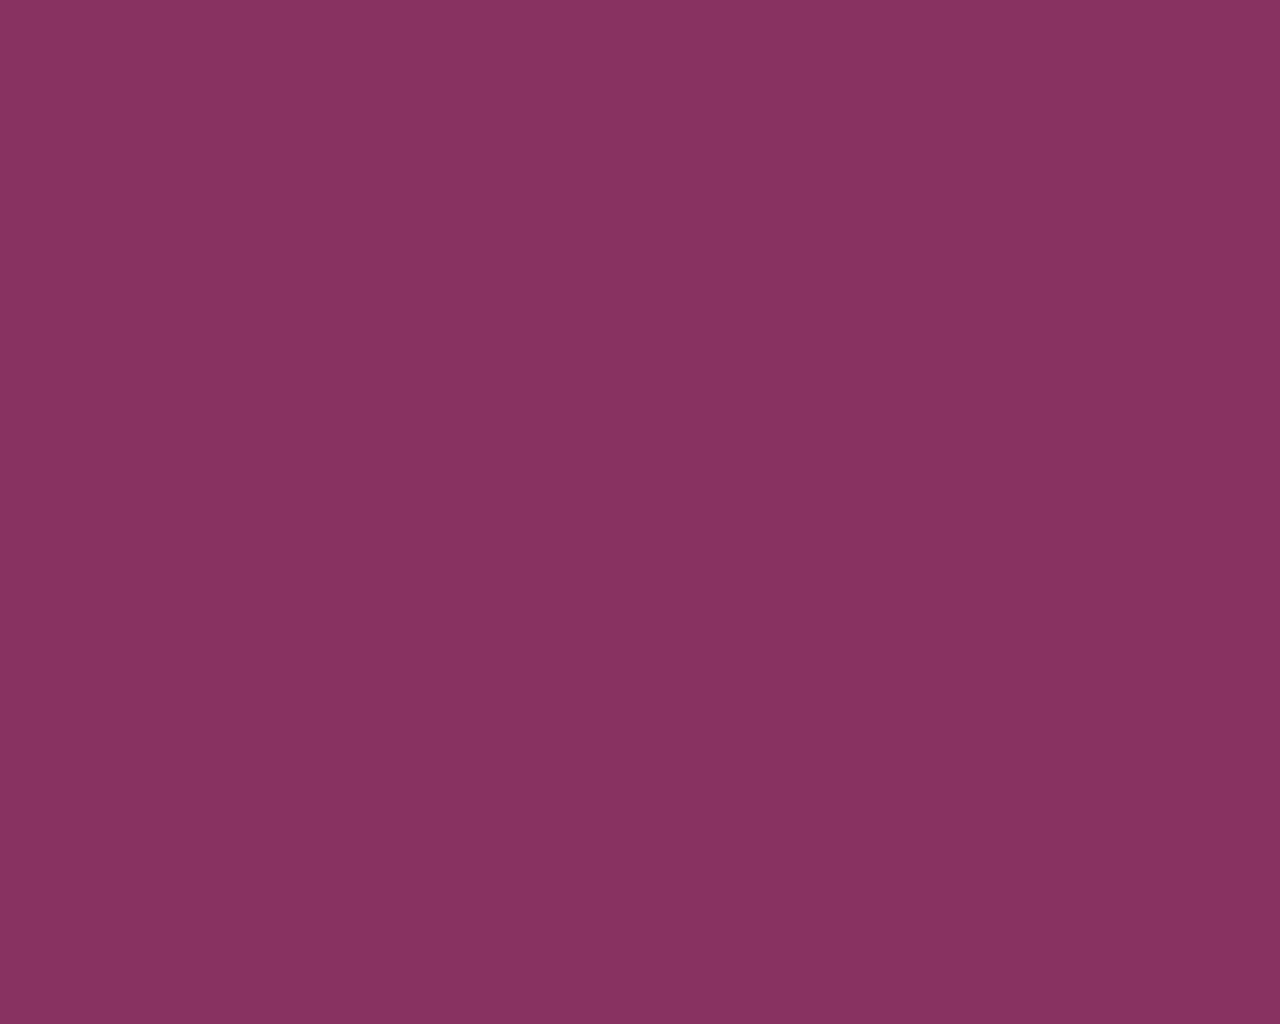 1280x1024 Boysenberry Solid Color Background